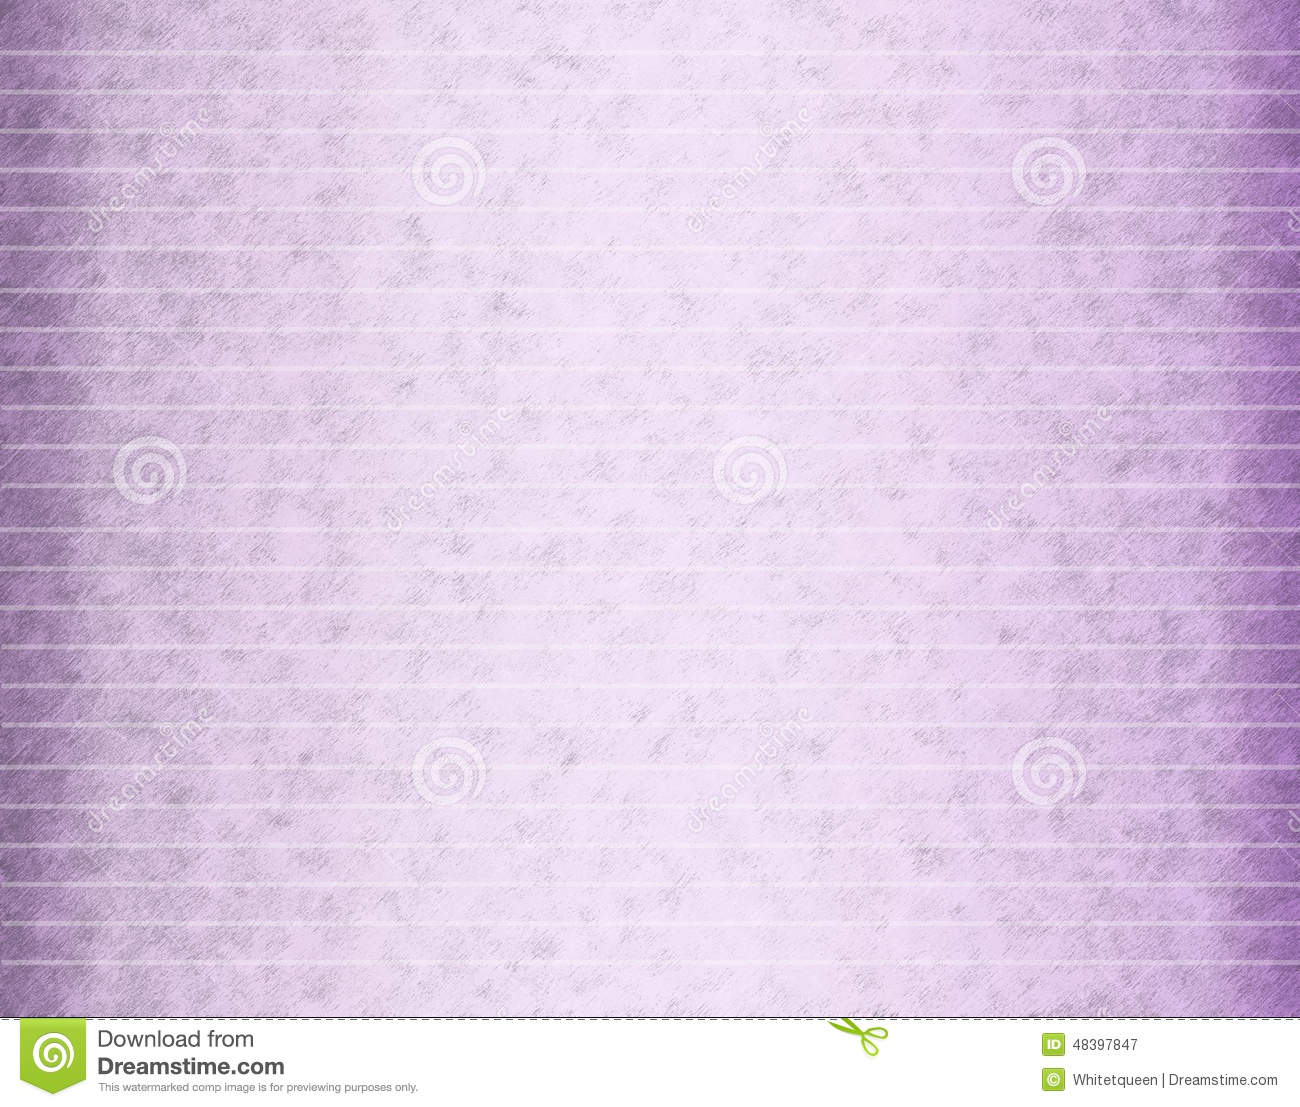 Wallpaper or website textured purple in color, rough surface and white lines.